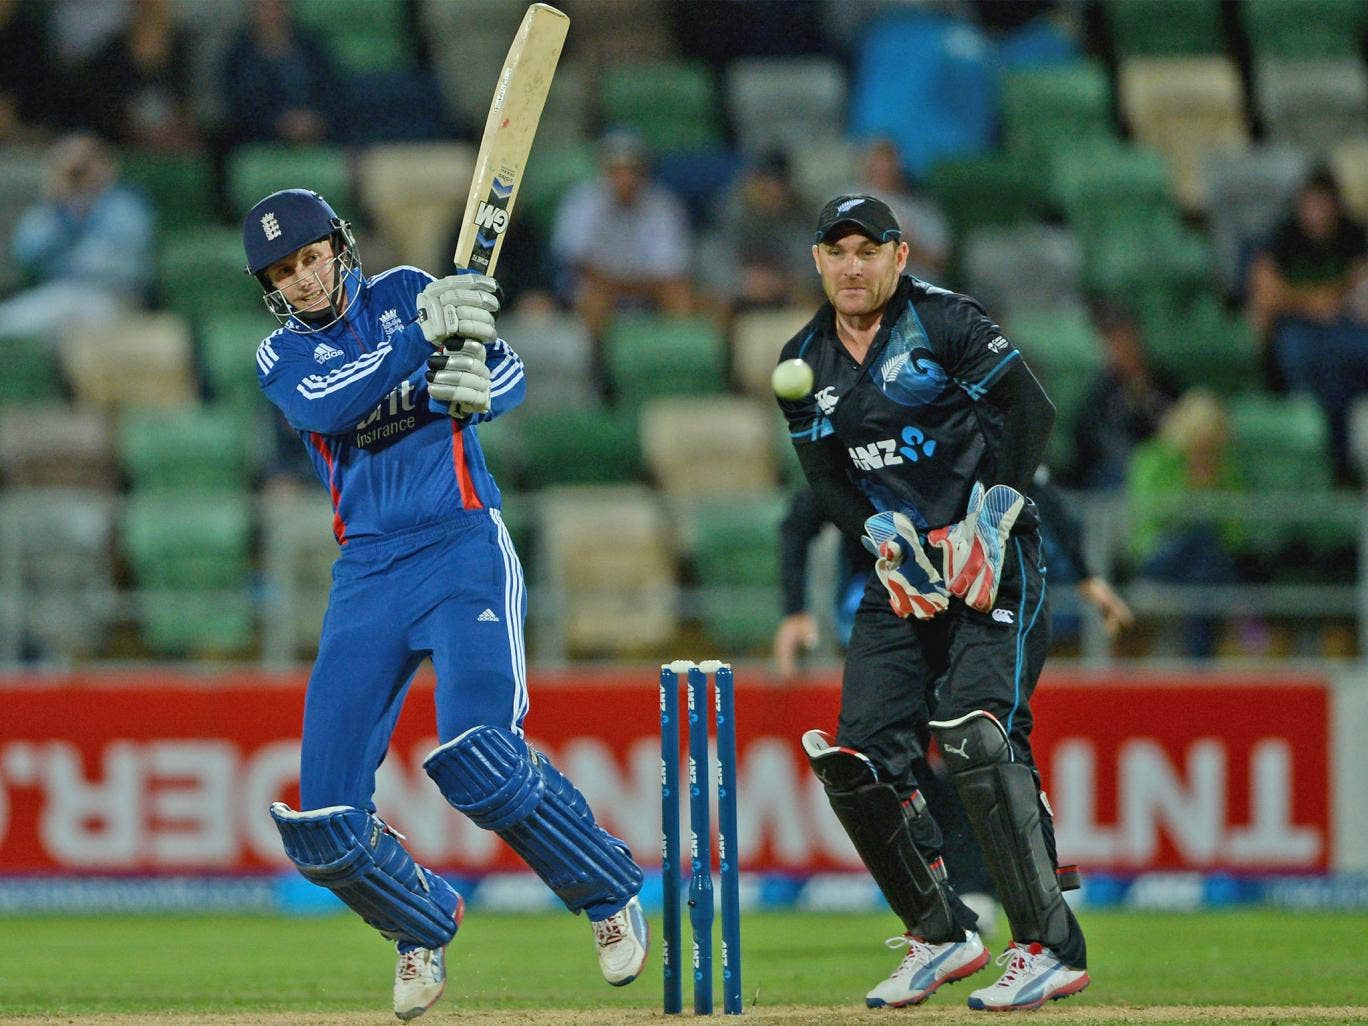 Joe Root hits out on his way to an unbeaten 79 in Napier